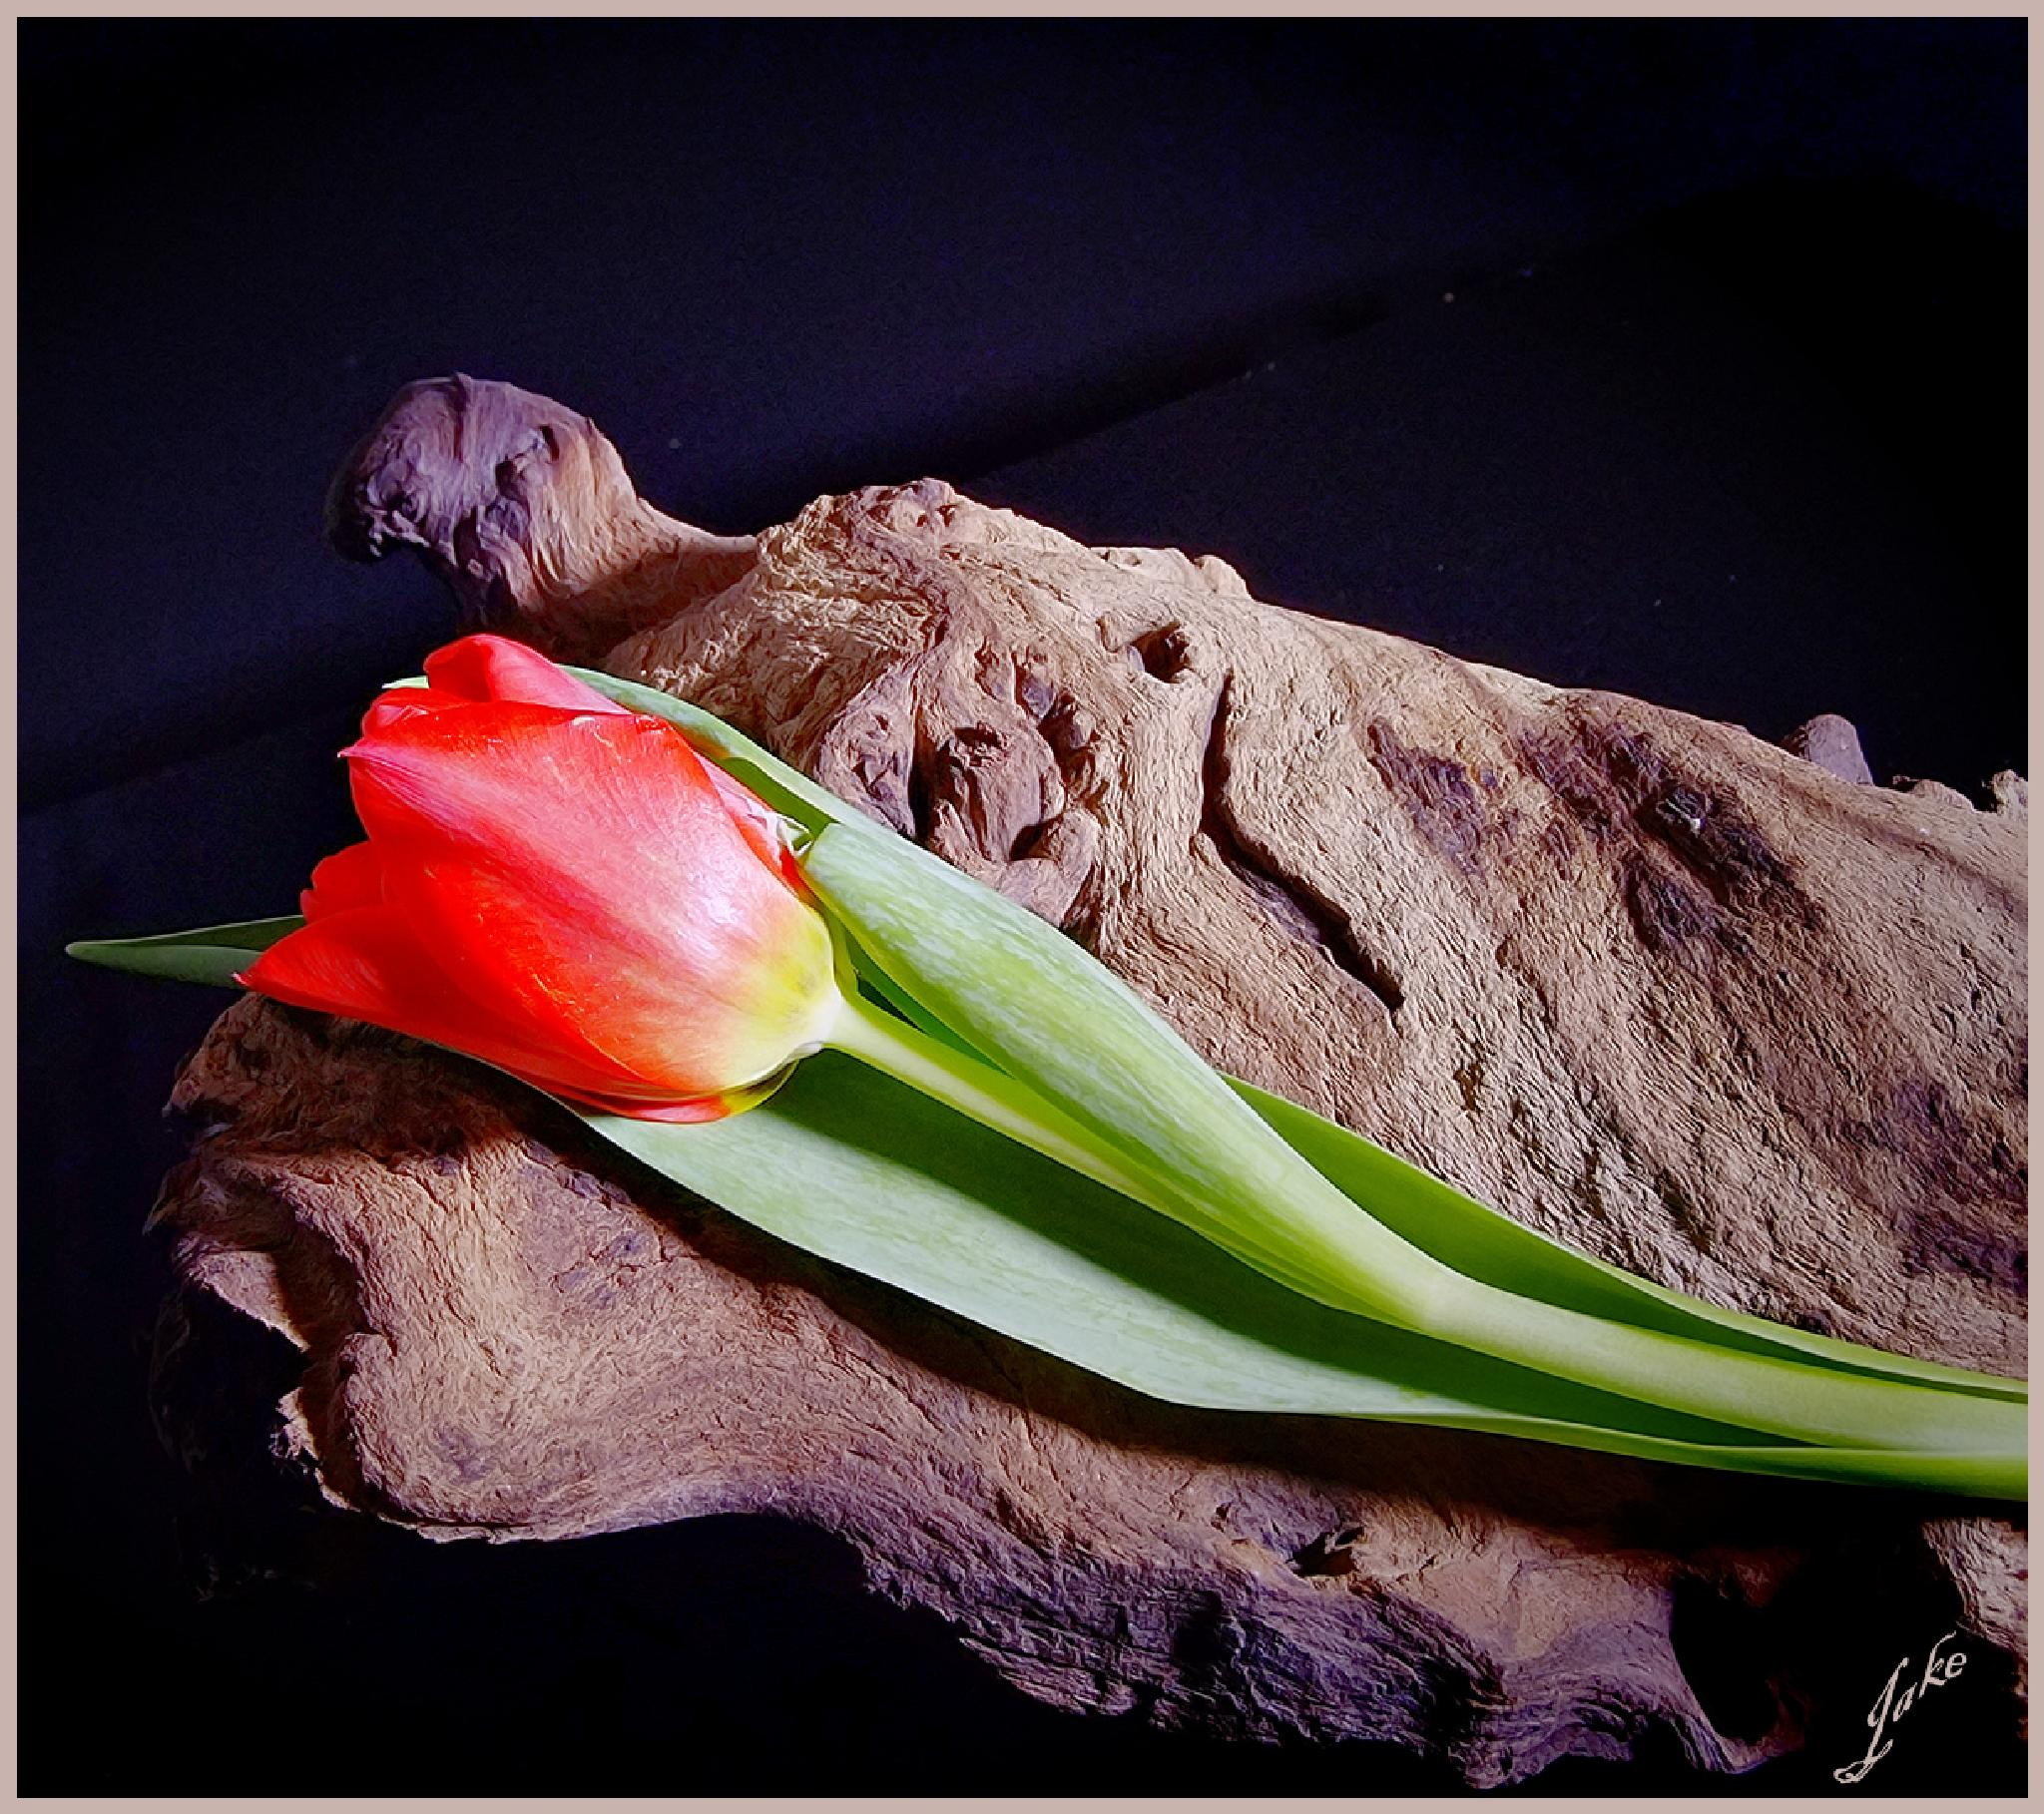 Tulip and driftwood by JOHN WATERS